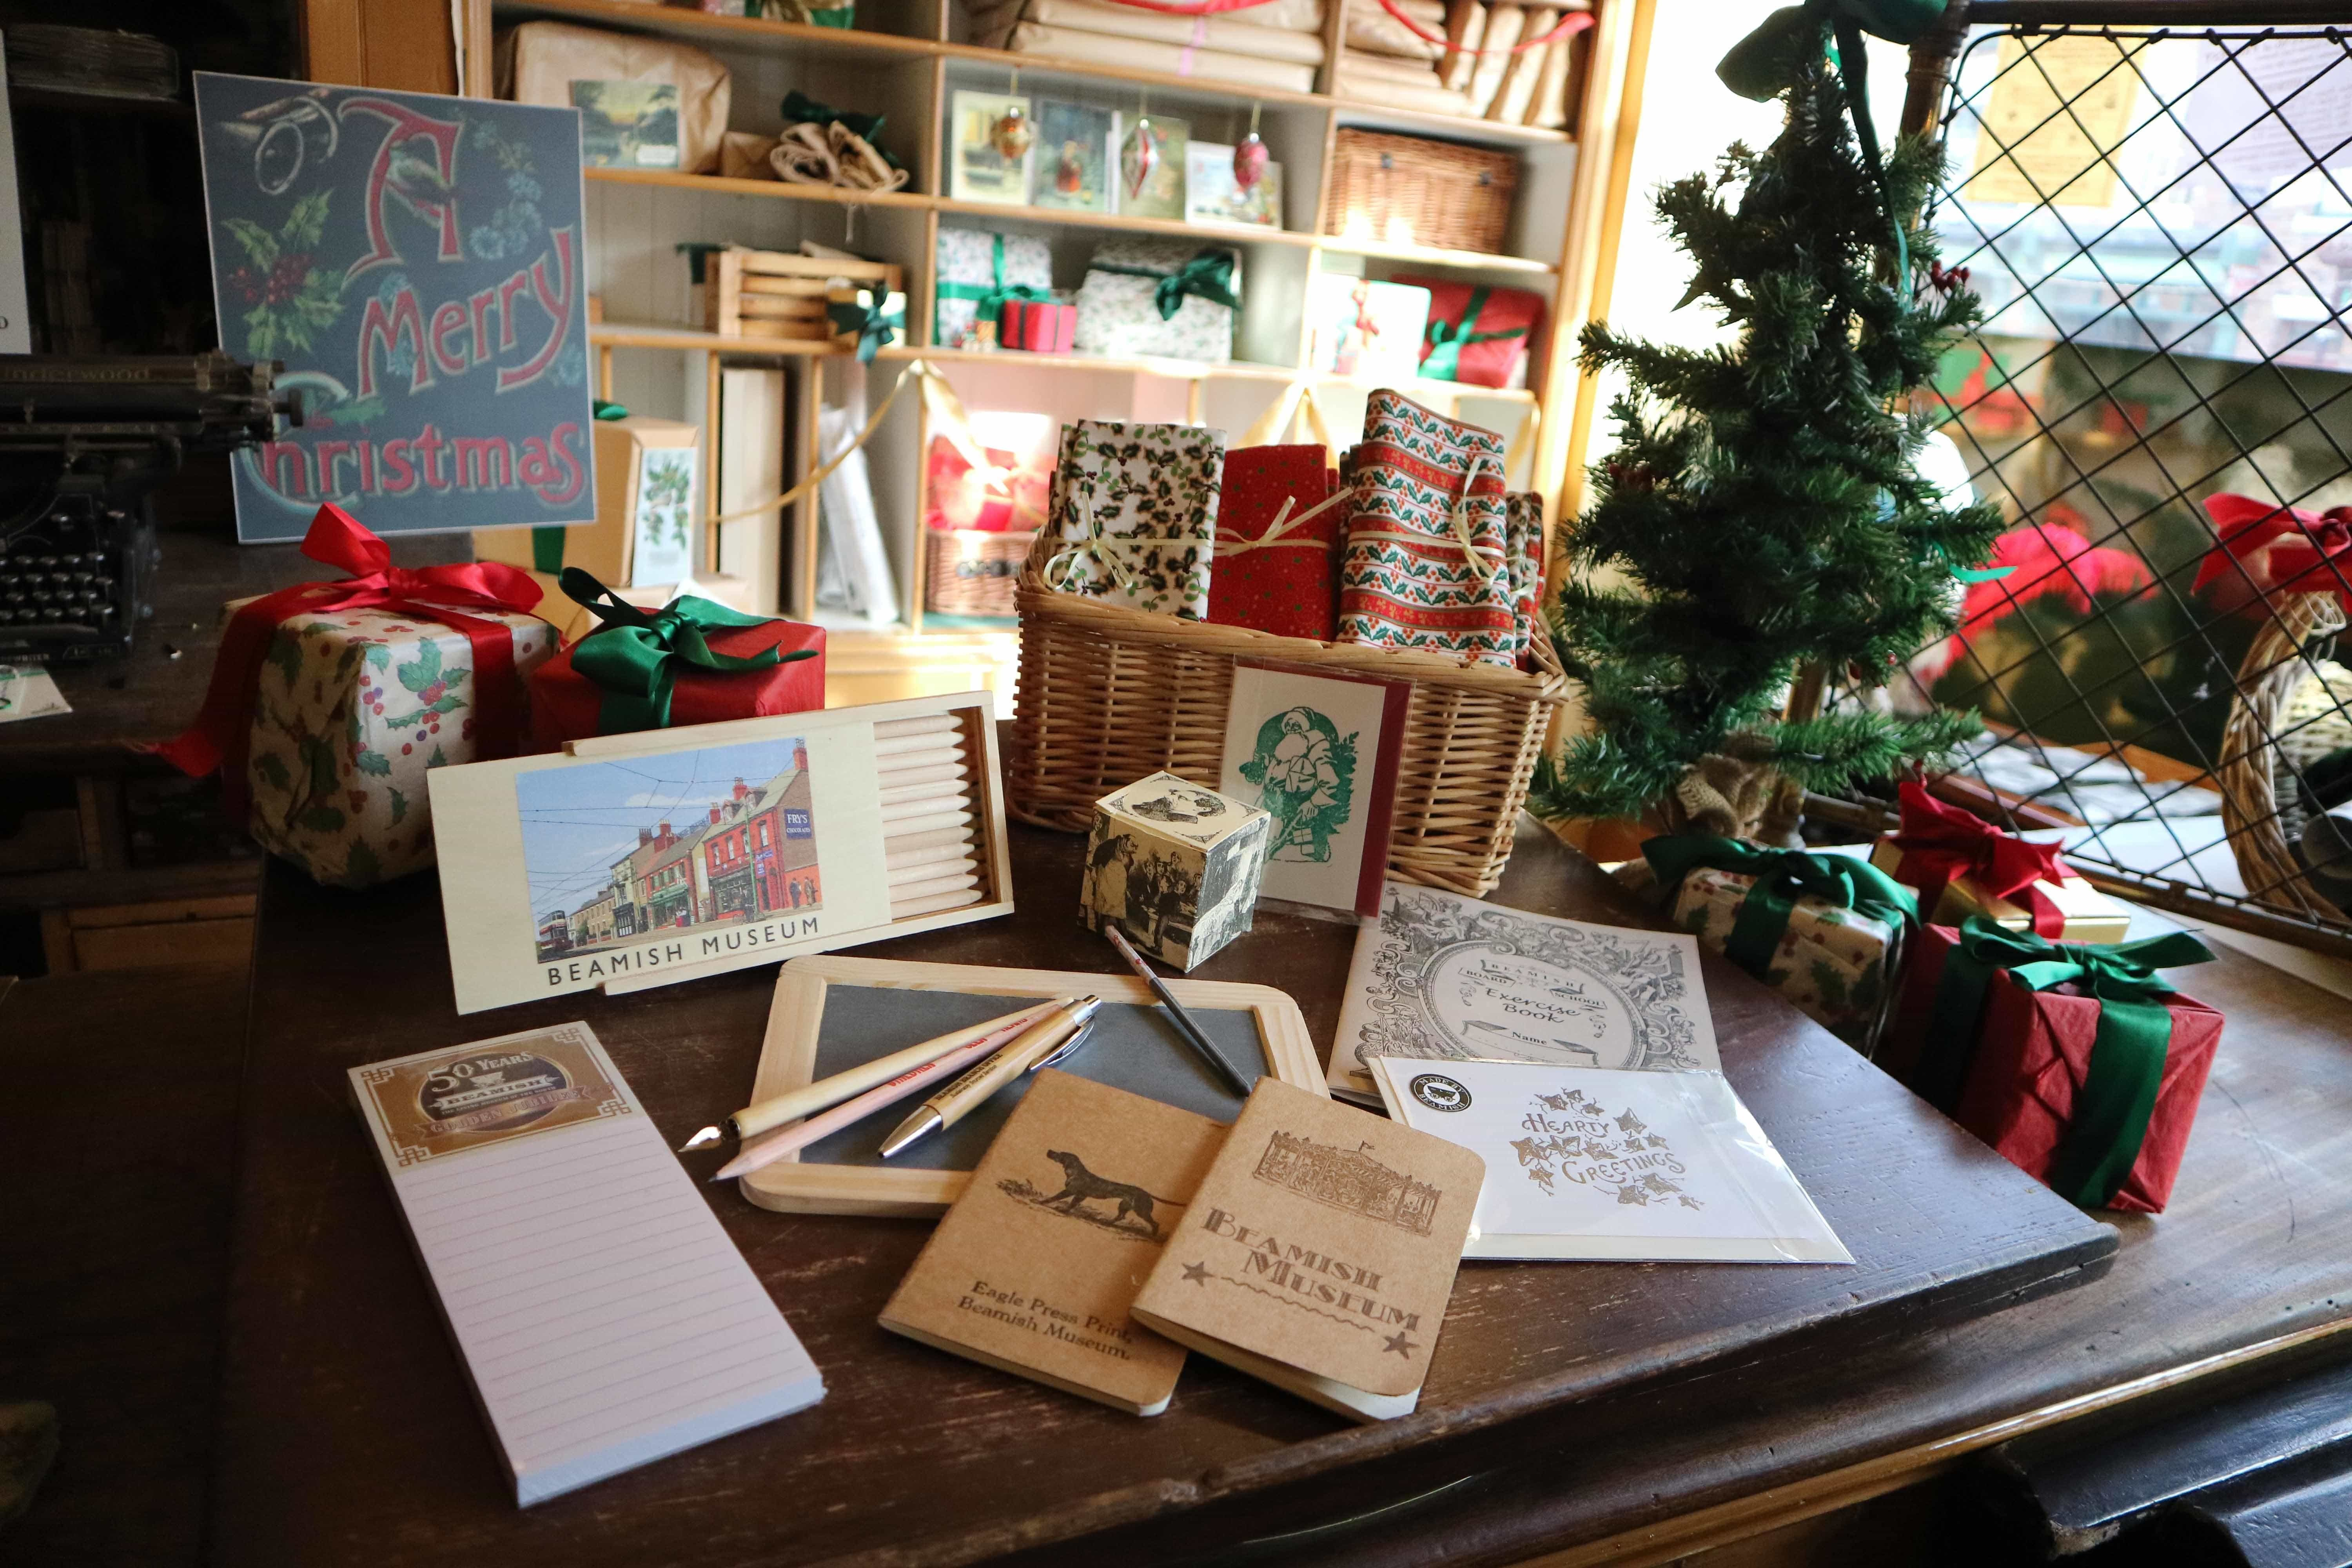 16 One stop Stationers Shop Beamish Museum Gift Guide